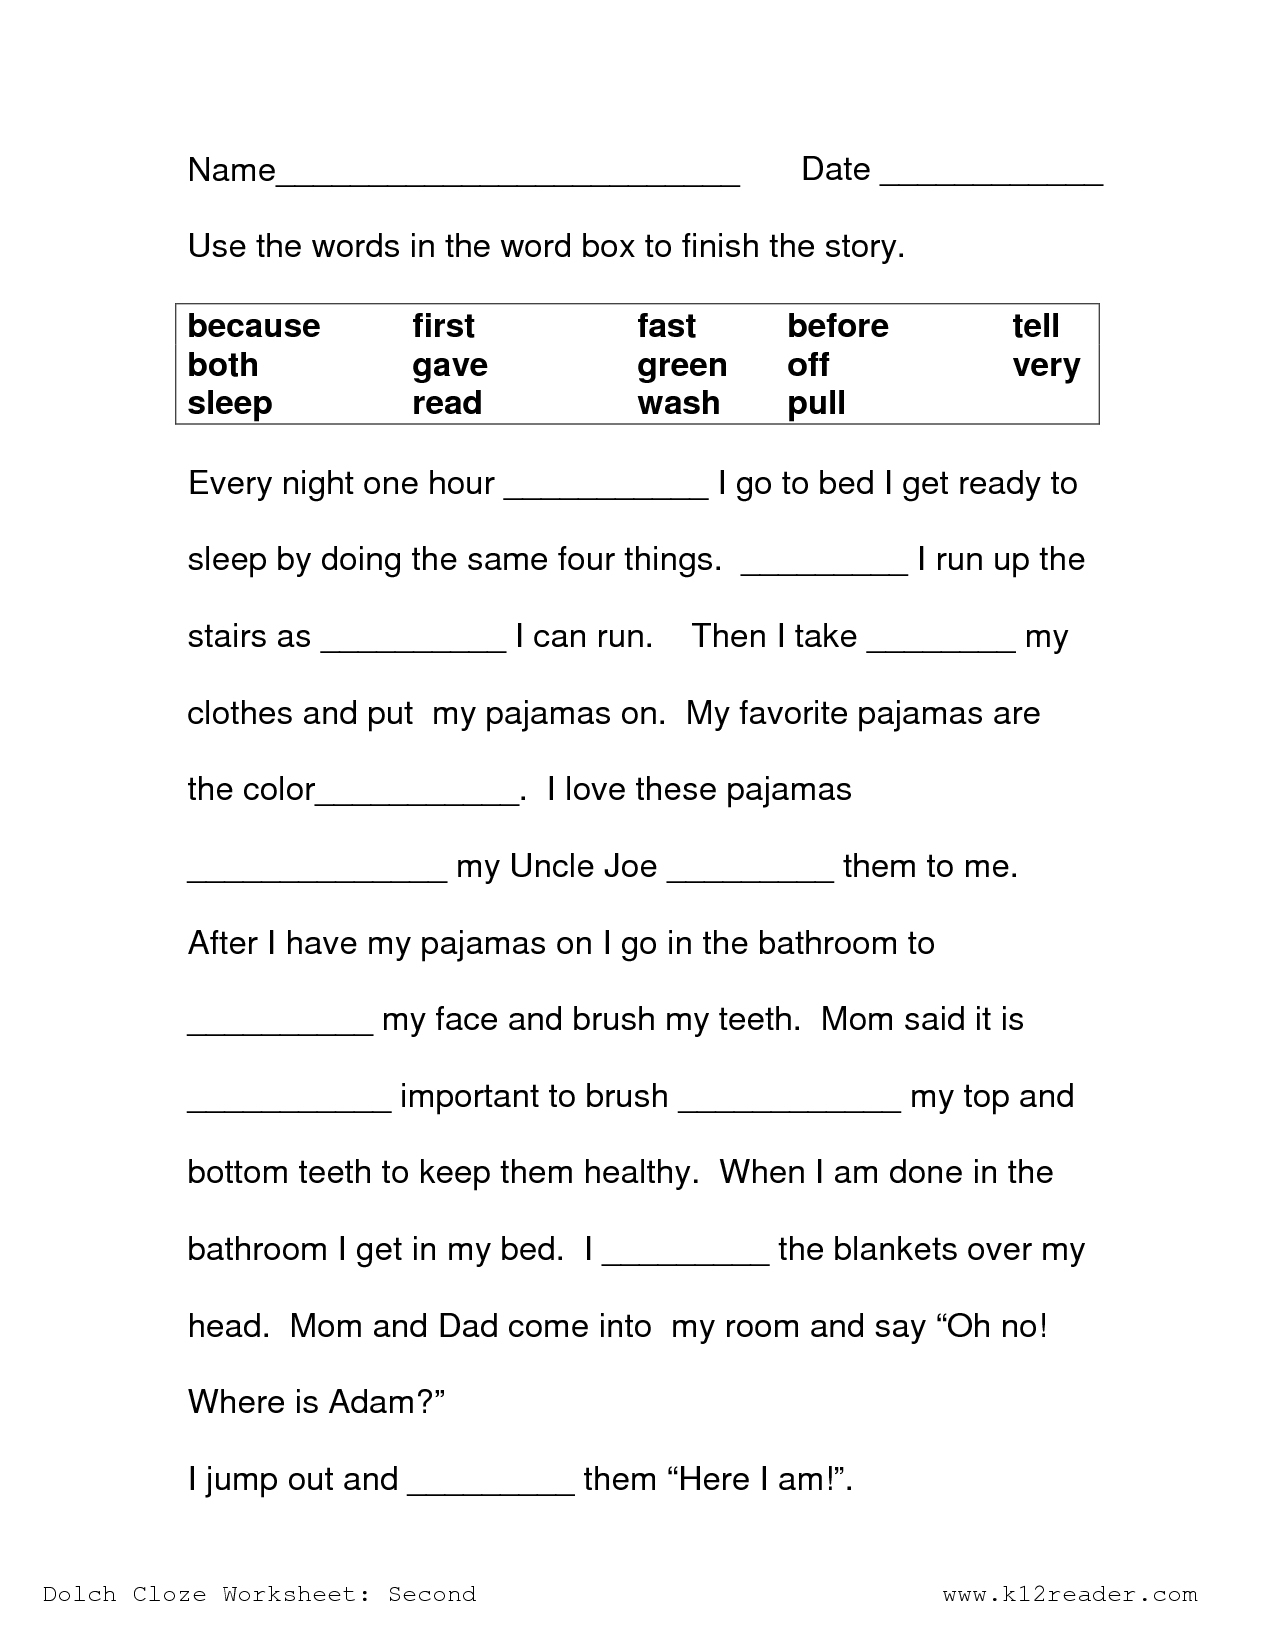 Free Printable Reading Comprehension Worksheets 3Rd Grade To - Free Printable Comprehension Worksheets For Grade 5